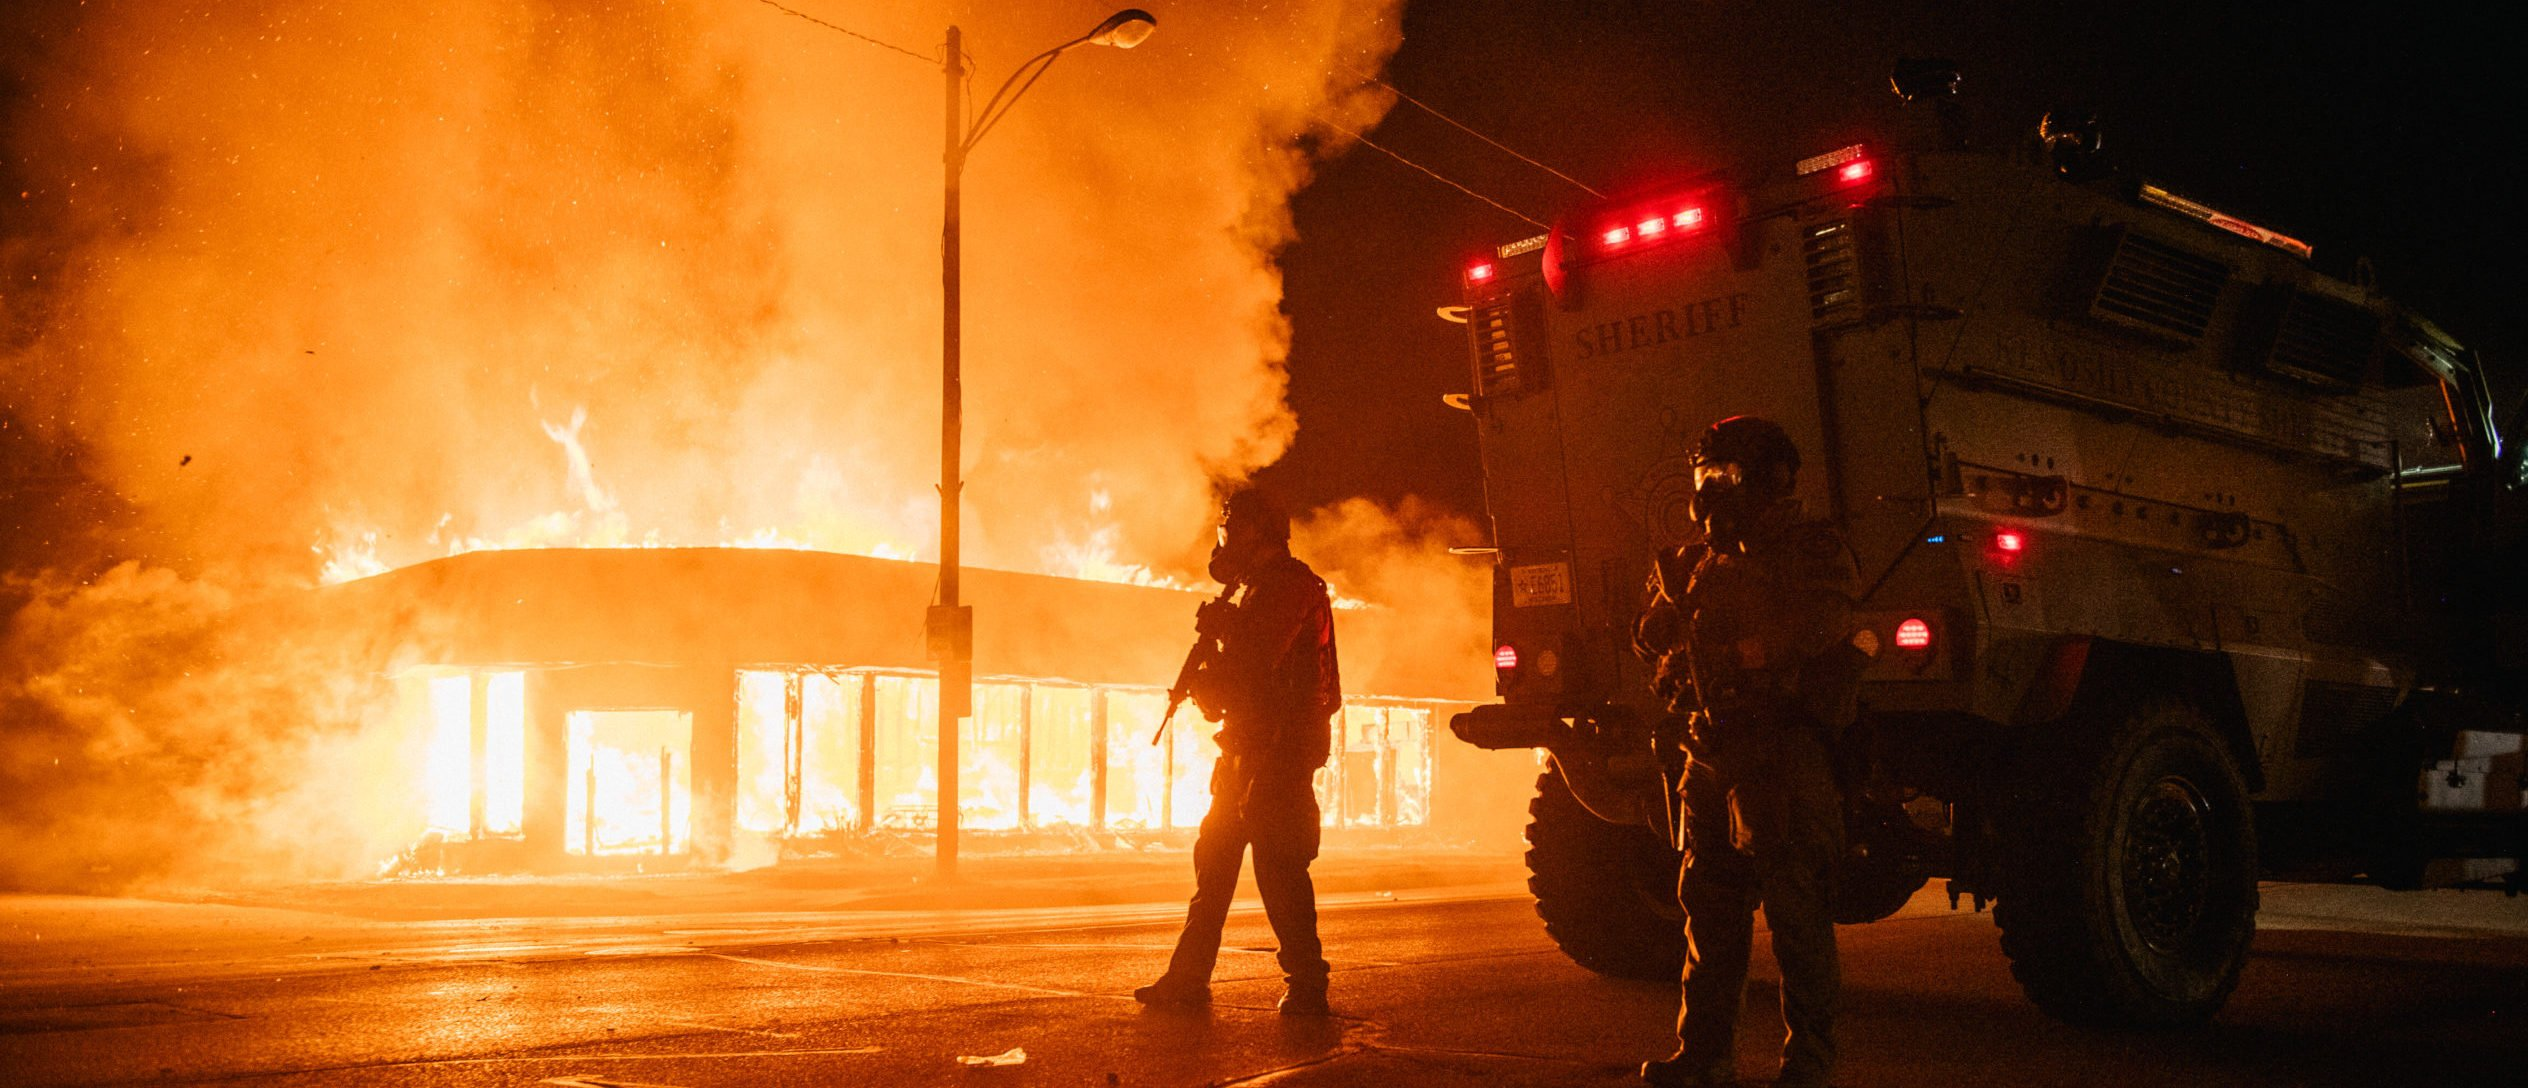 A police armored vehicle patrols an intersection on August 24, 2020 in Kenosha, Wisconsin. This is the second night of rioting after the shooting of Jacob Blake, 29, on August 23. (Brandon Bell/Getty Images)